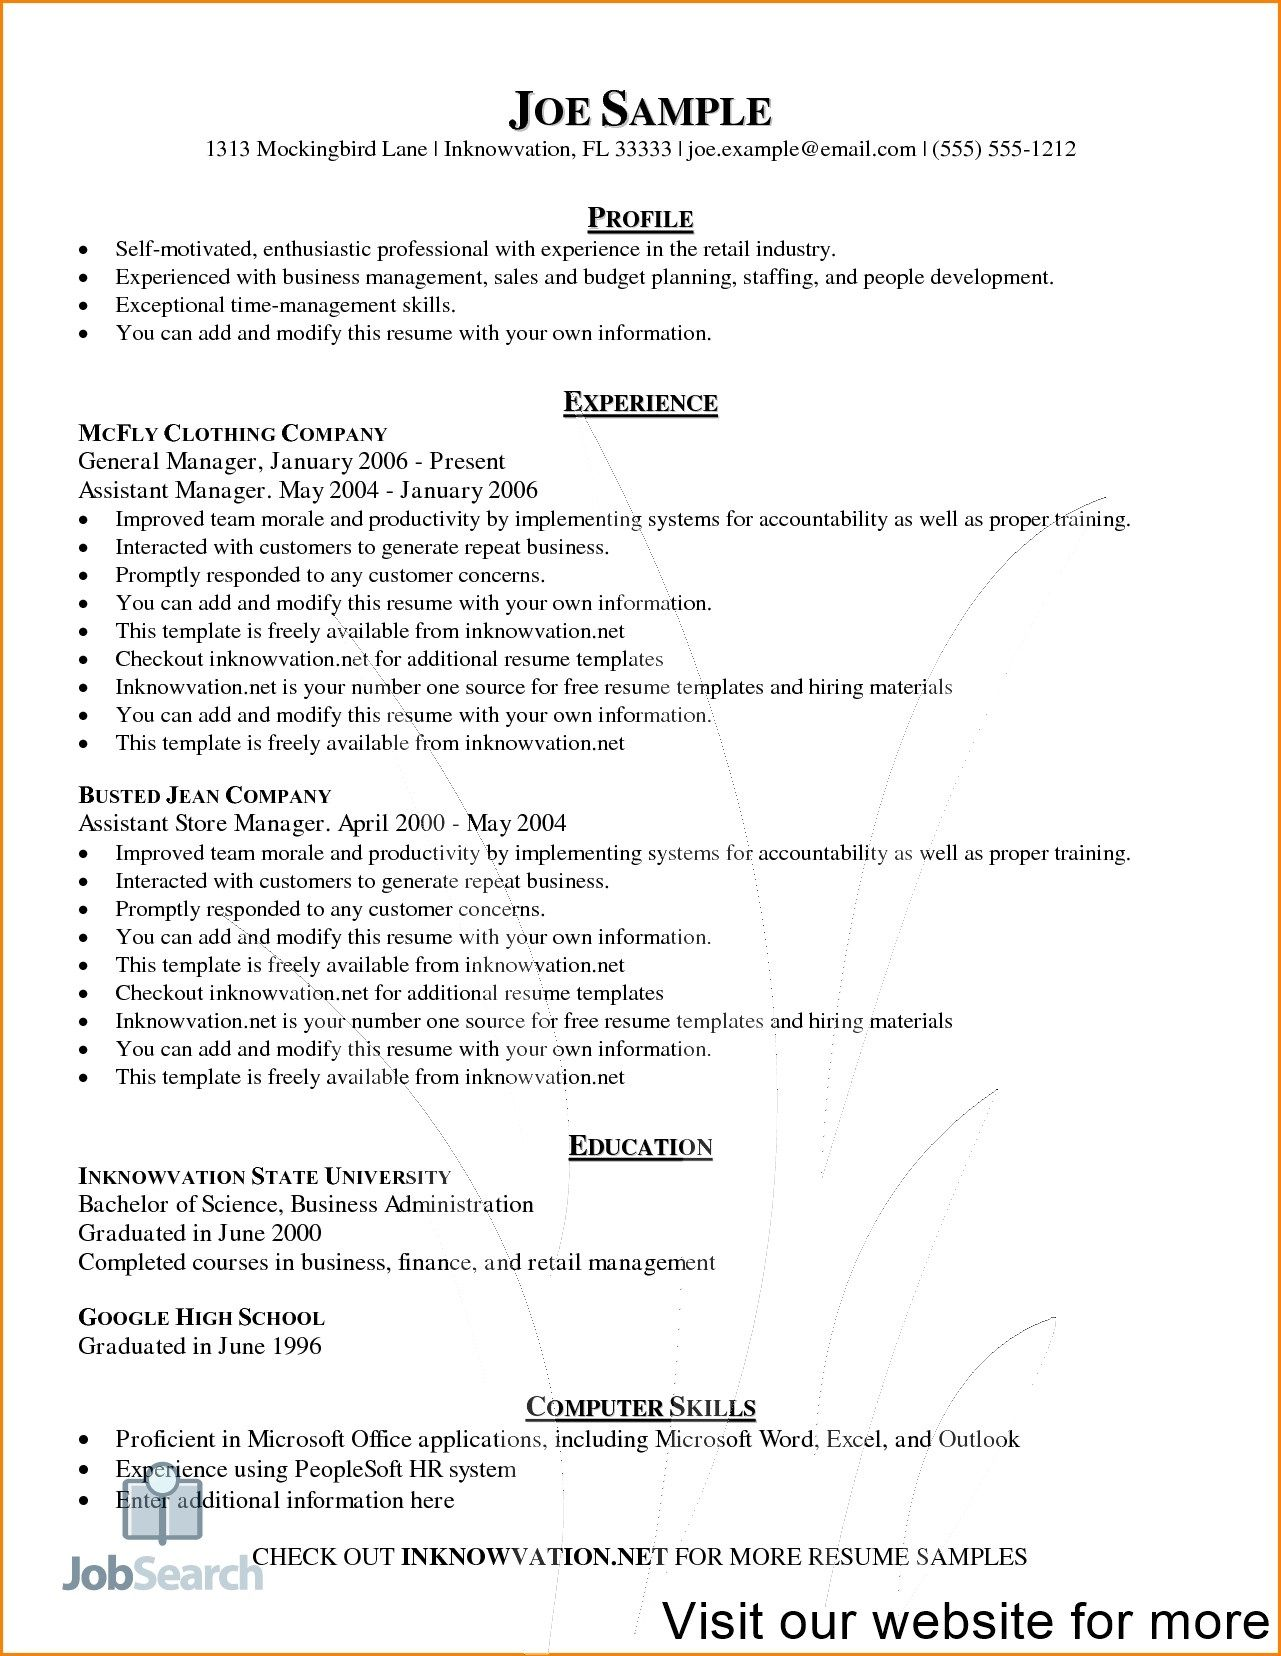 resume template download free in 2020 Downloadable